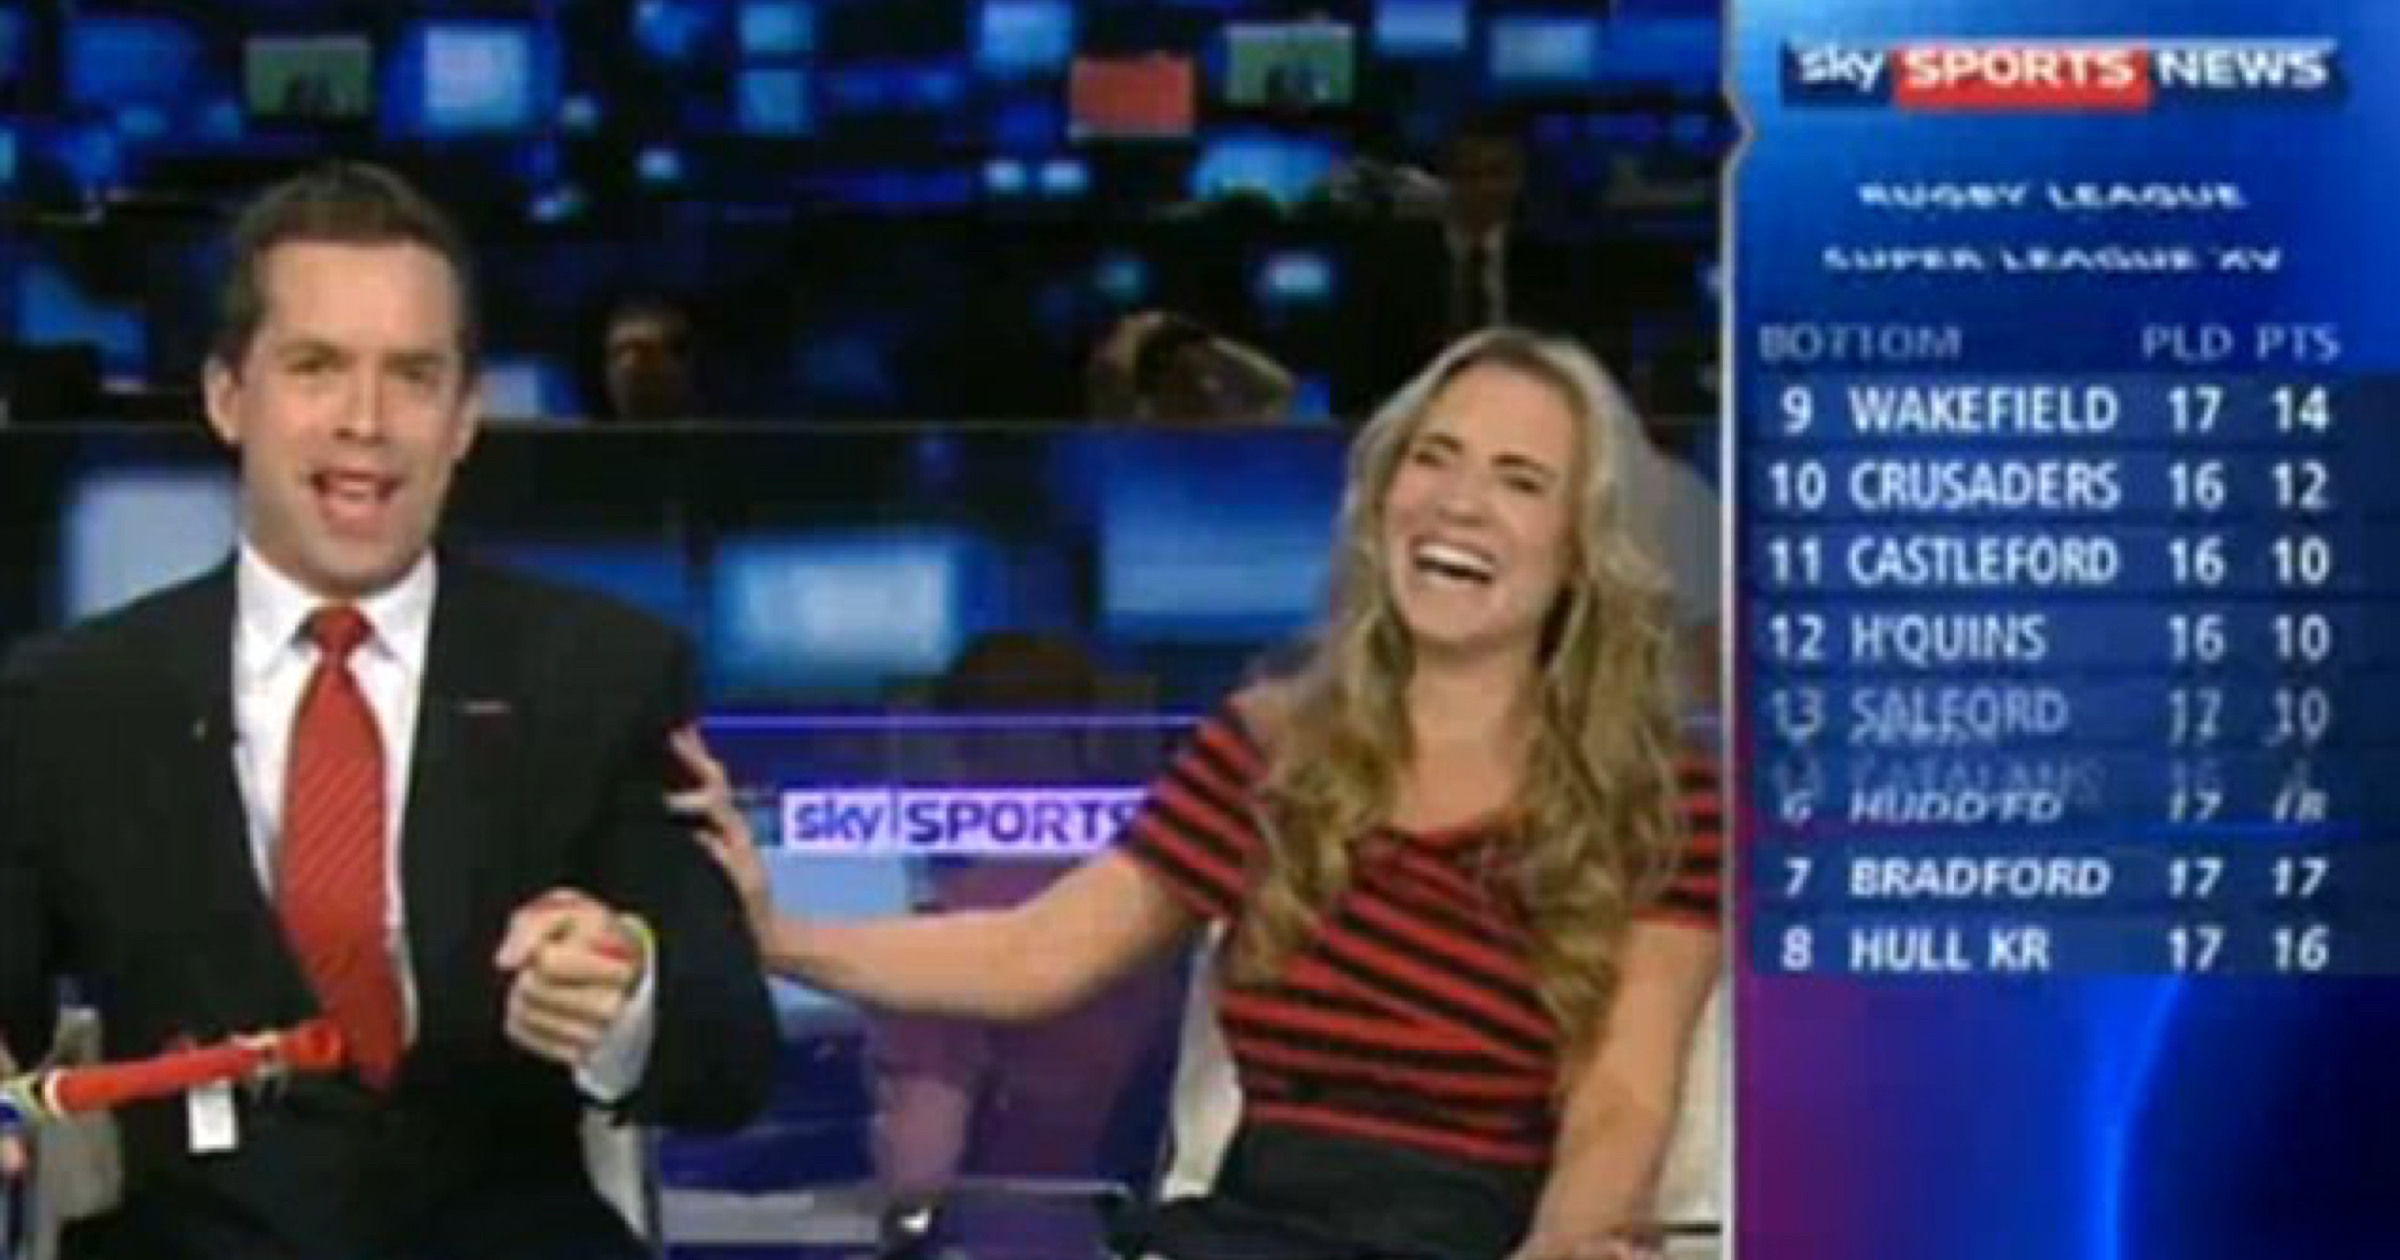 Throwback To Georgie Thompson's Prank On David Jones Live On Sky Sports News